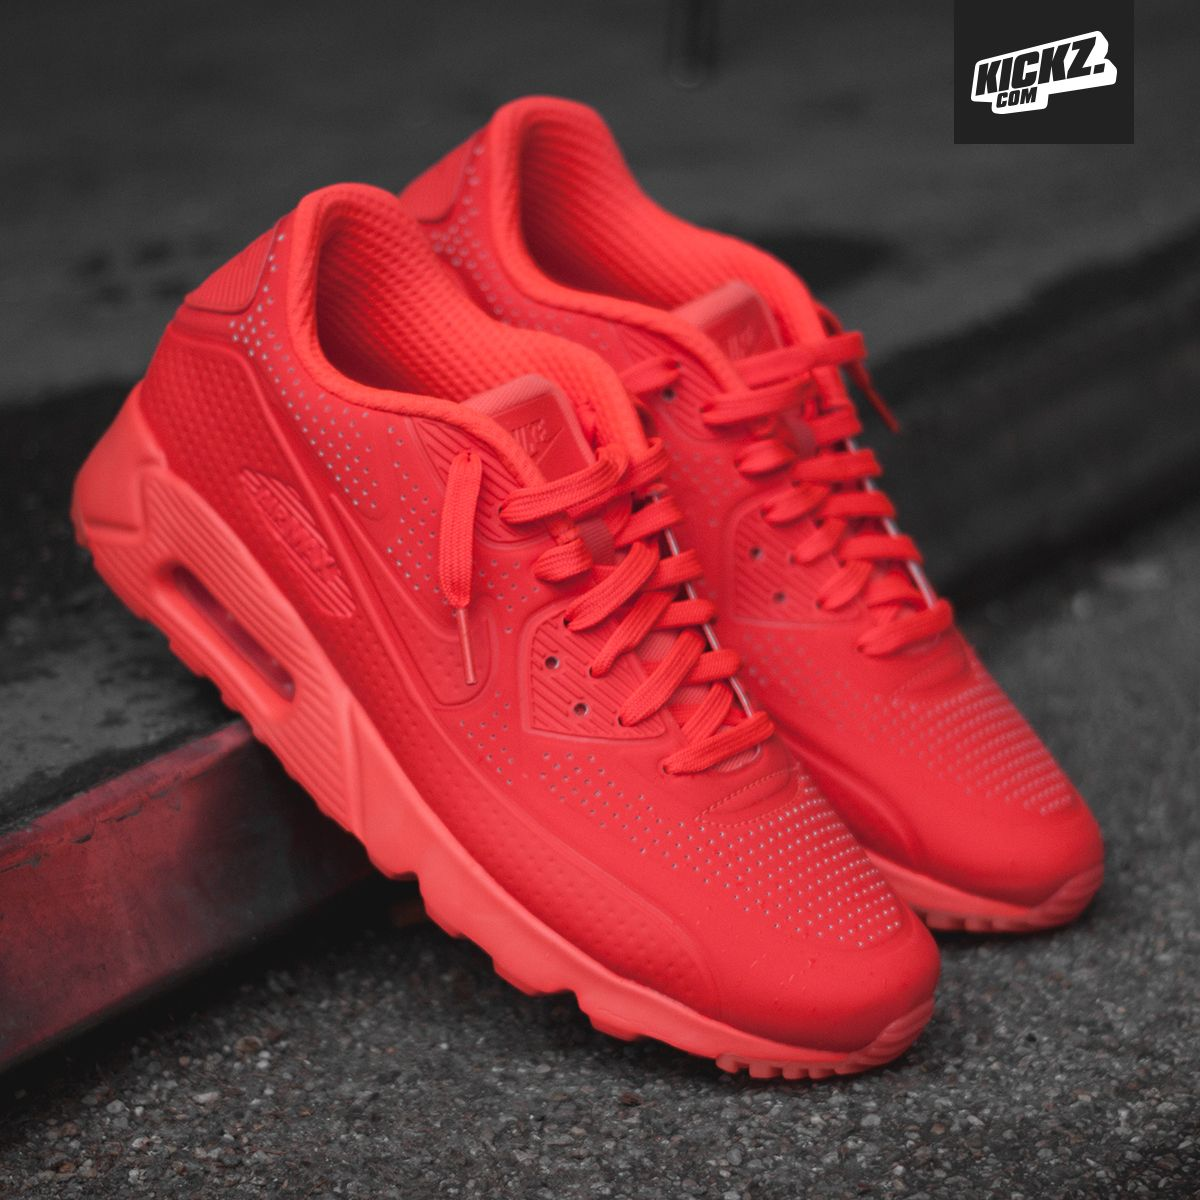 New Nike Air Max 90 Ultra Moire